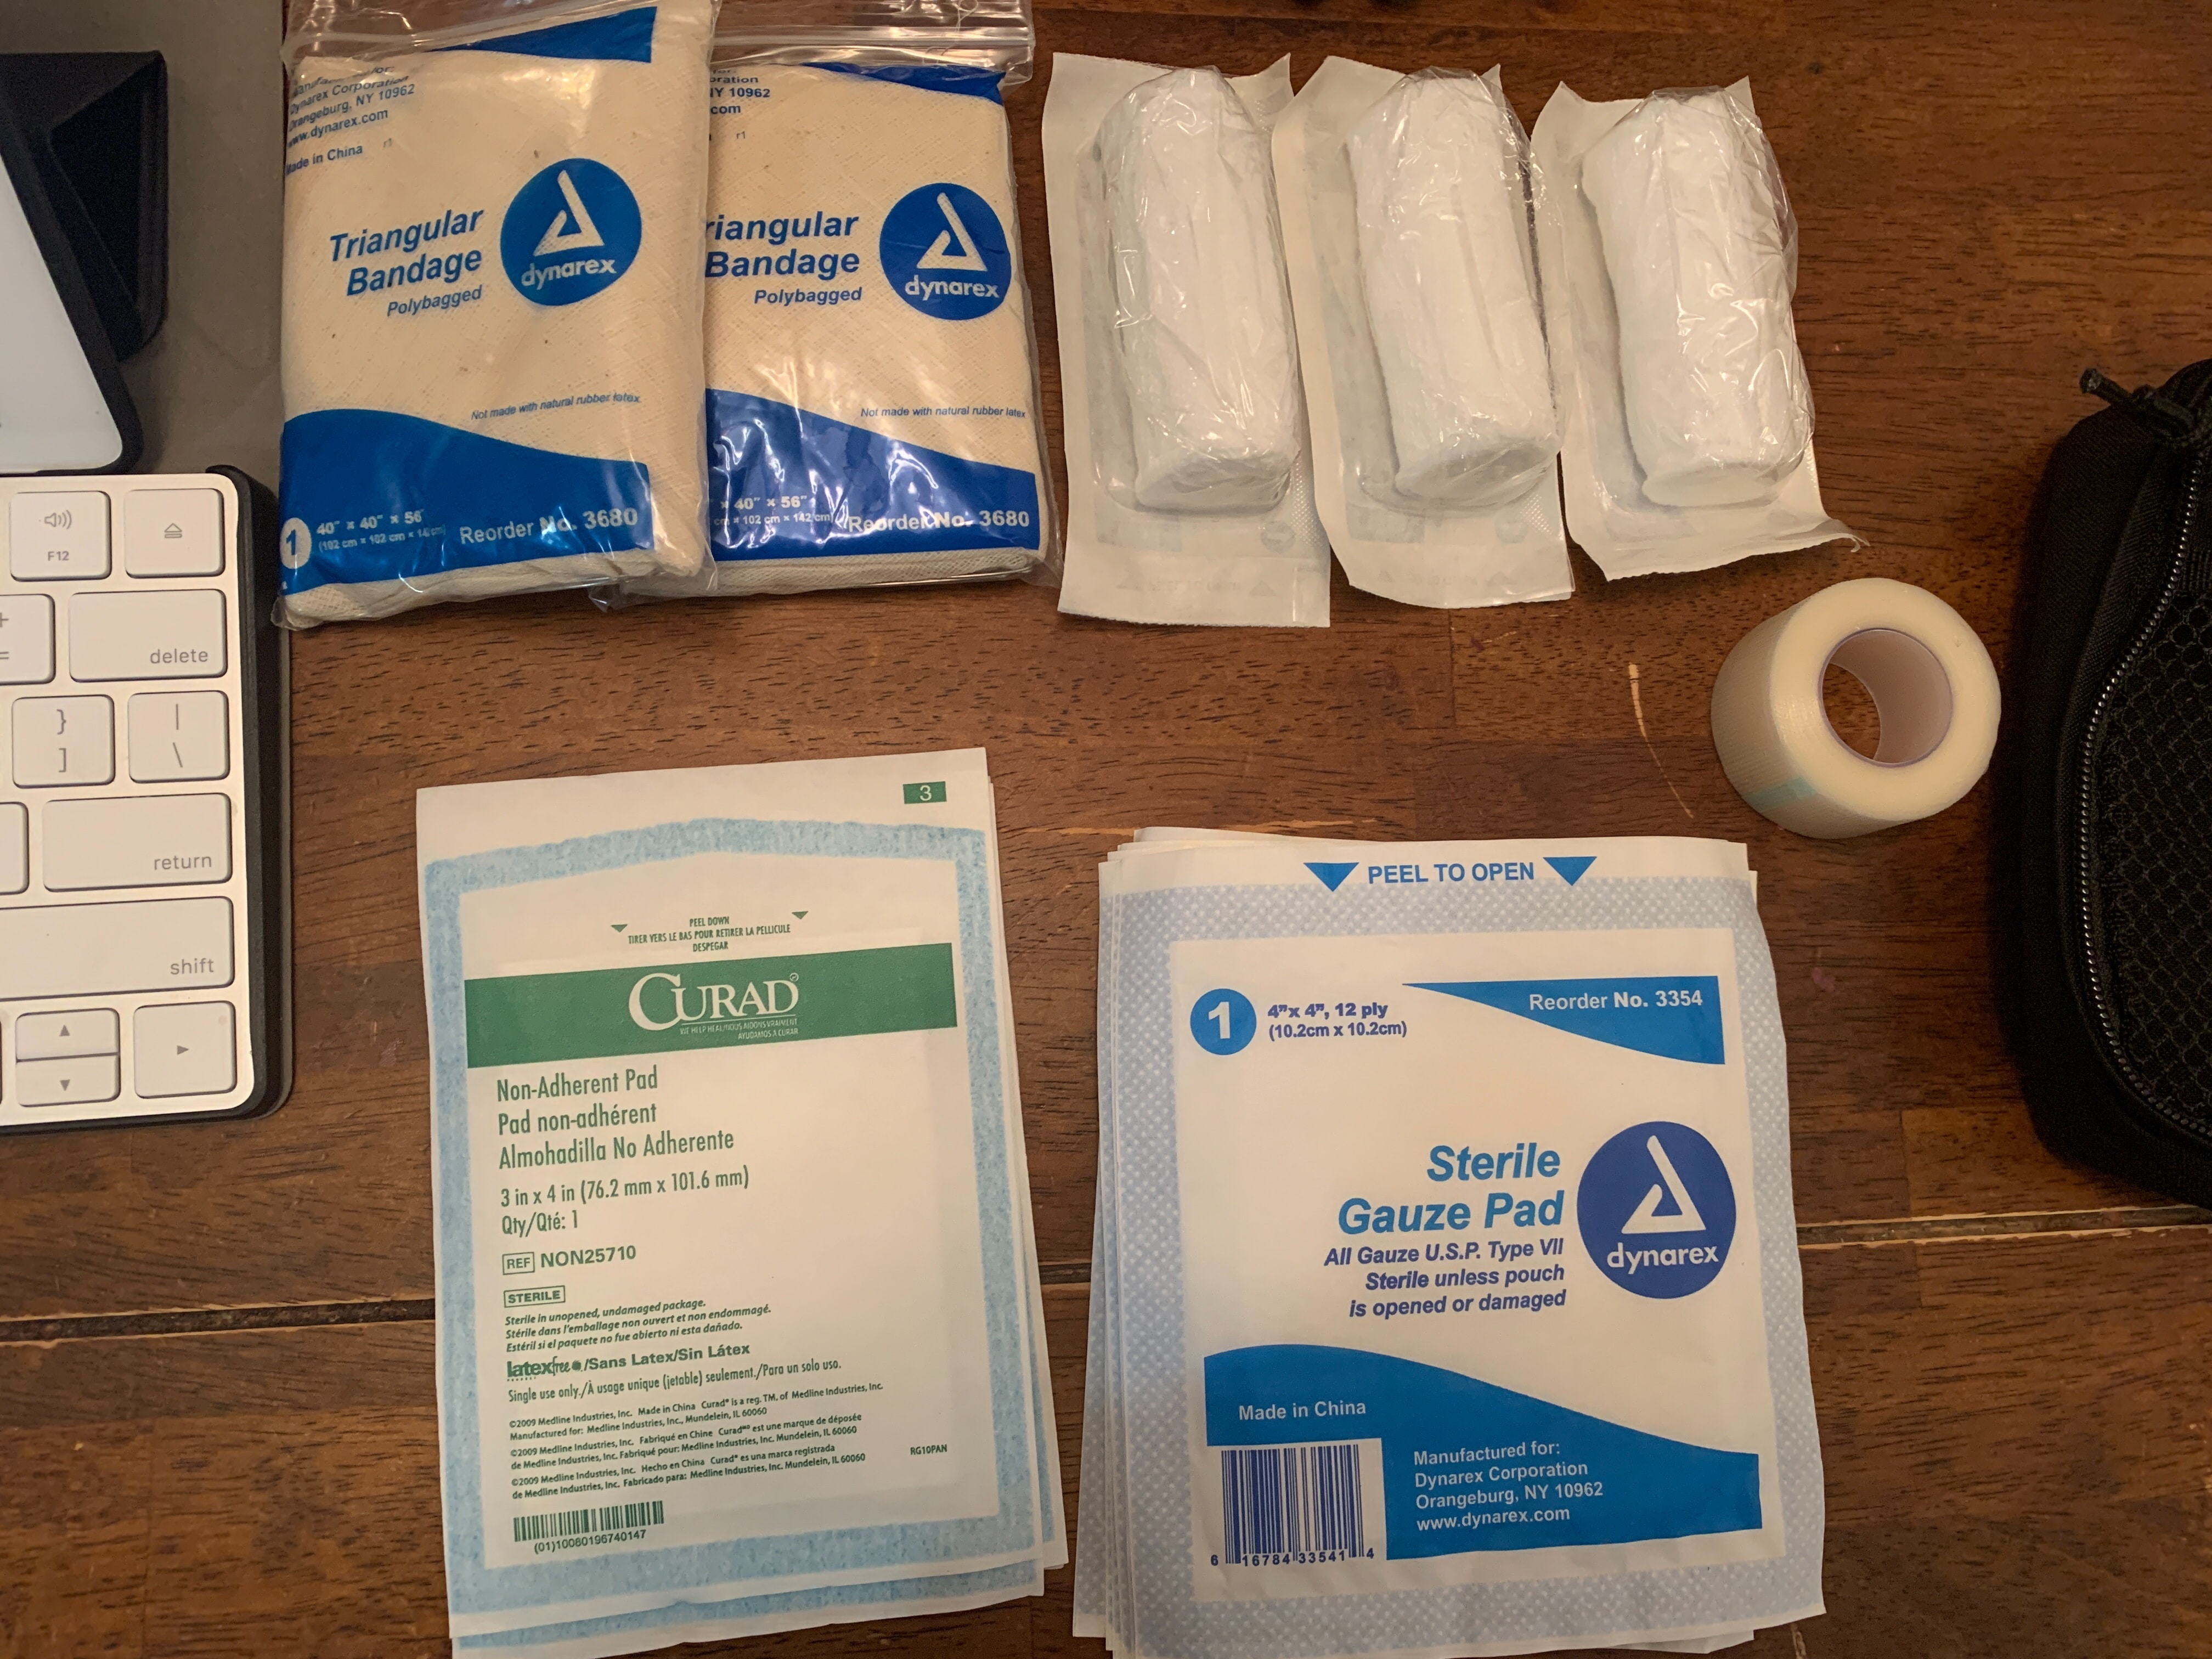 Pair of triangular bandage, gauze pad, tape, a set of nonstick dressings and rolled gauze being presented.